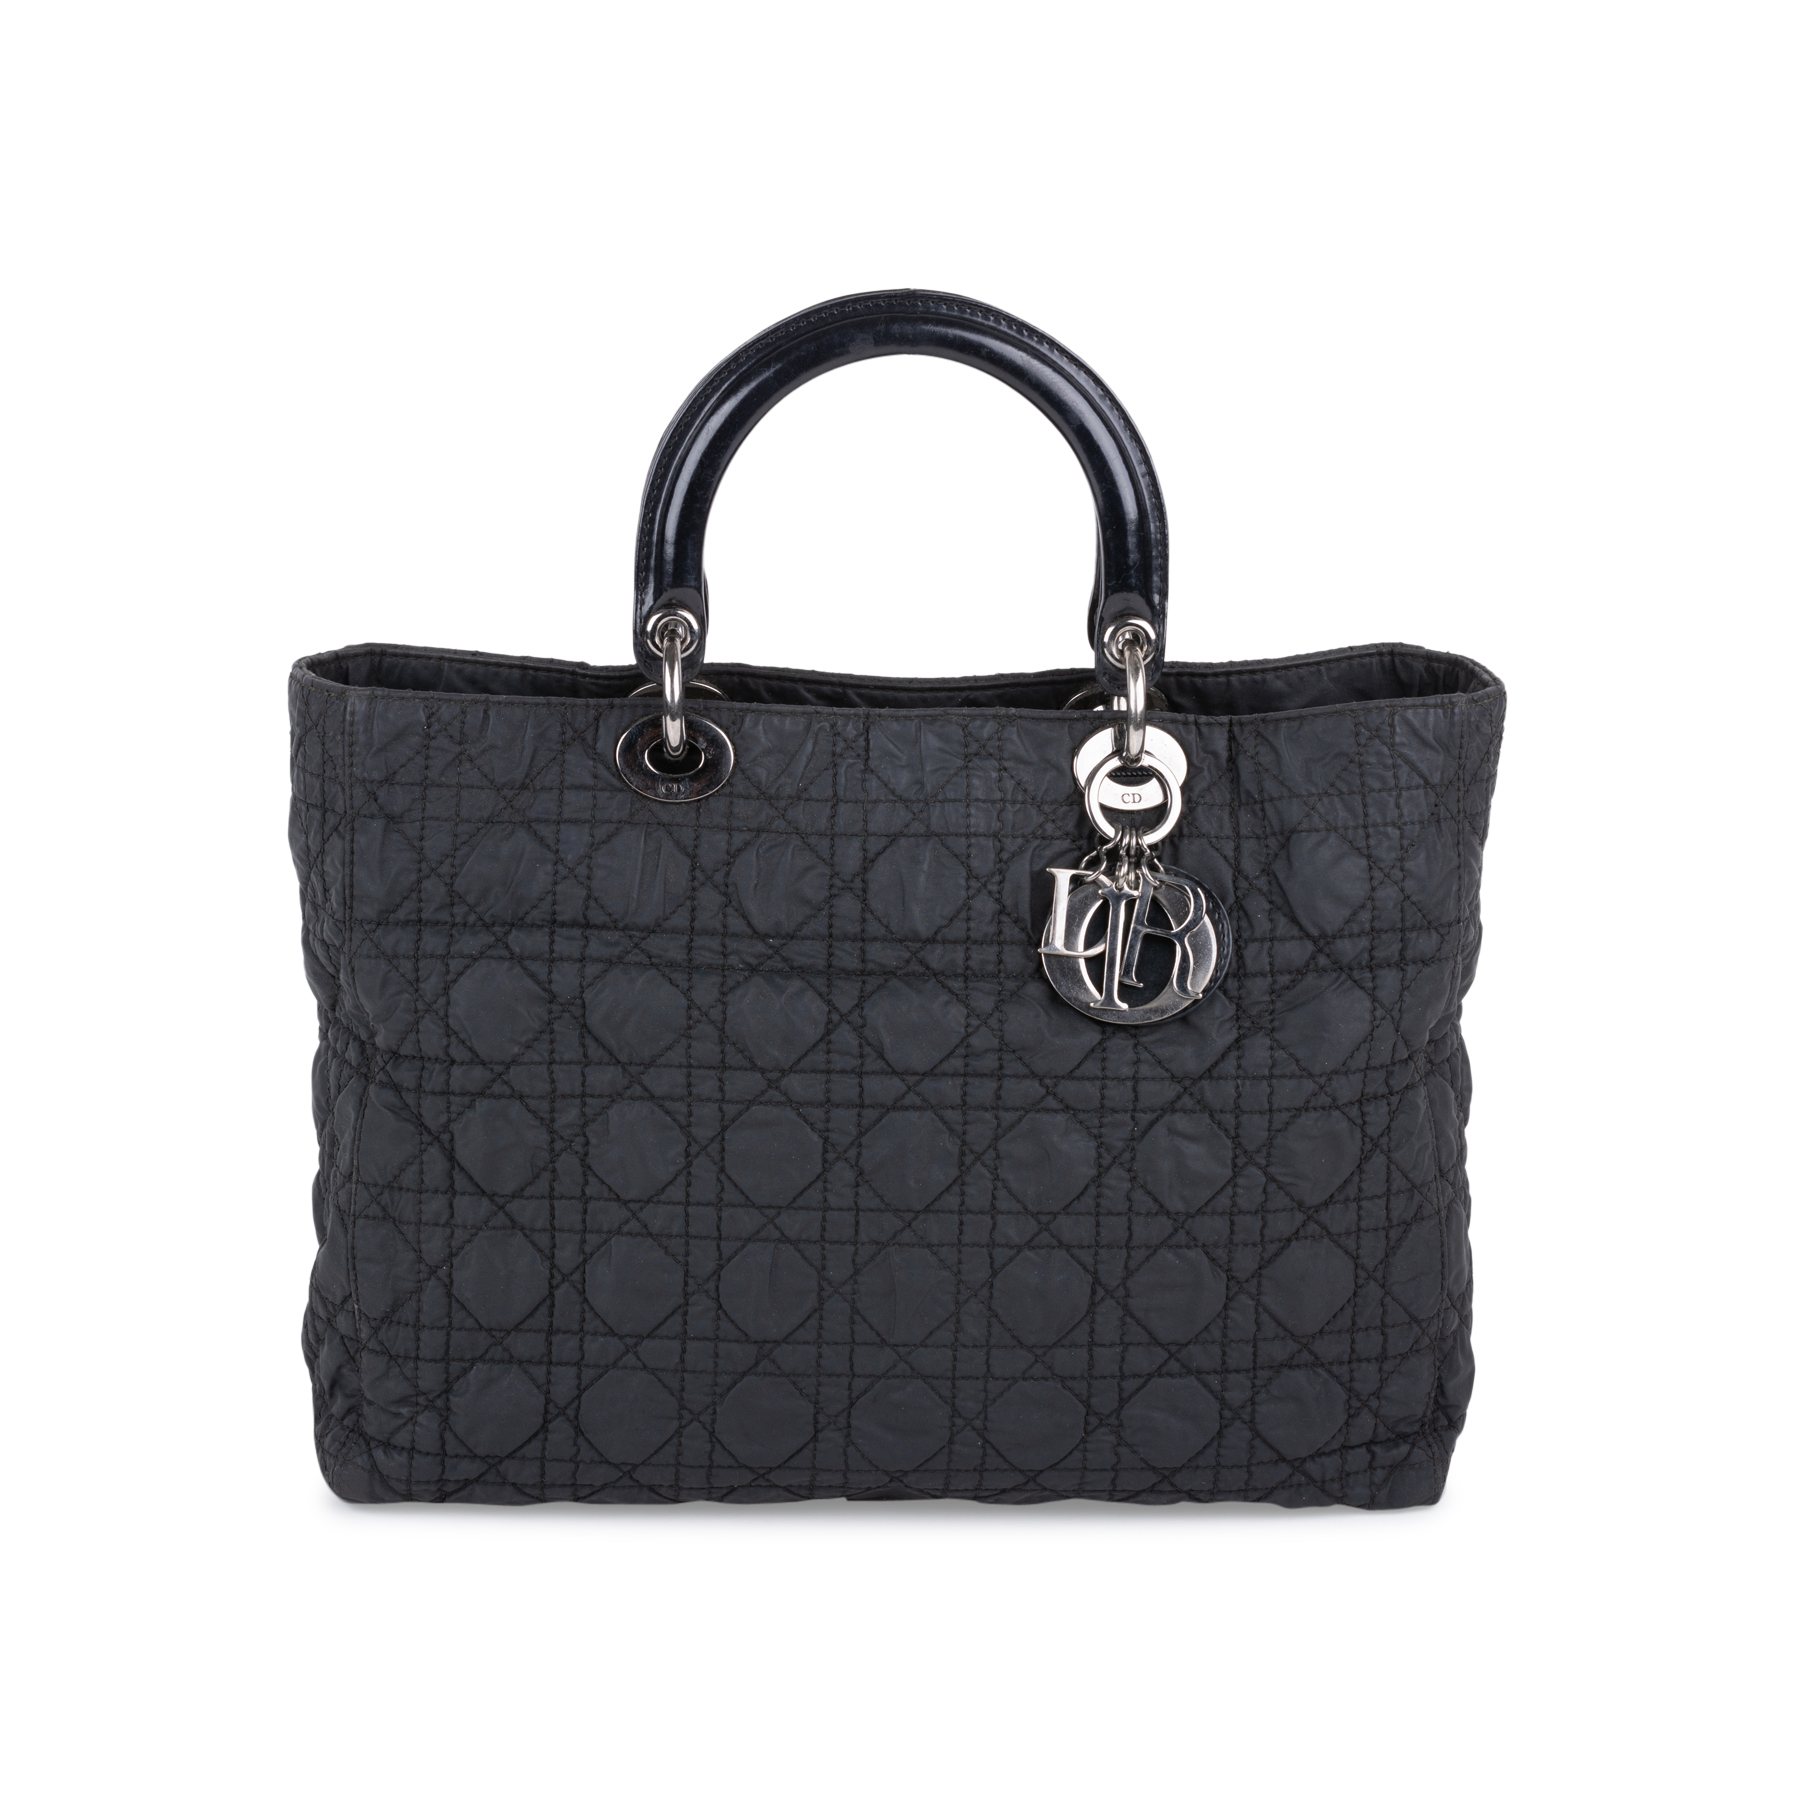 96a21738b5 Authentic Second Hand Christian Dior Large Nylon Lady Dior Bag  (PSS-132-00137) - THE FIFTH COLLECTION